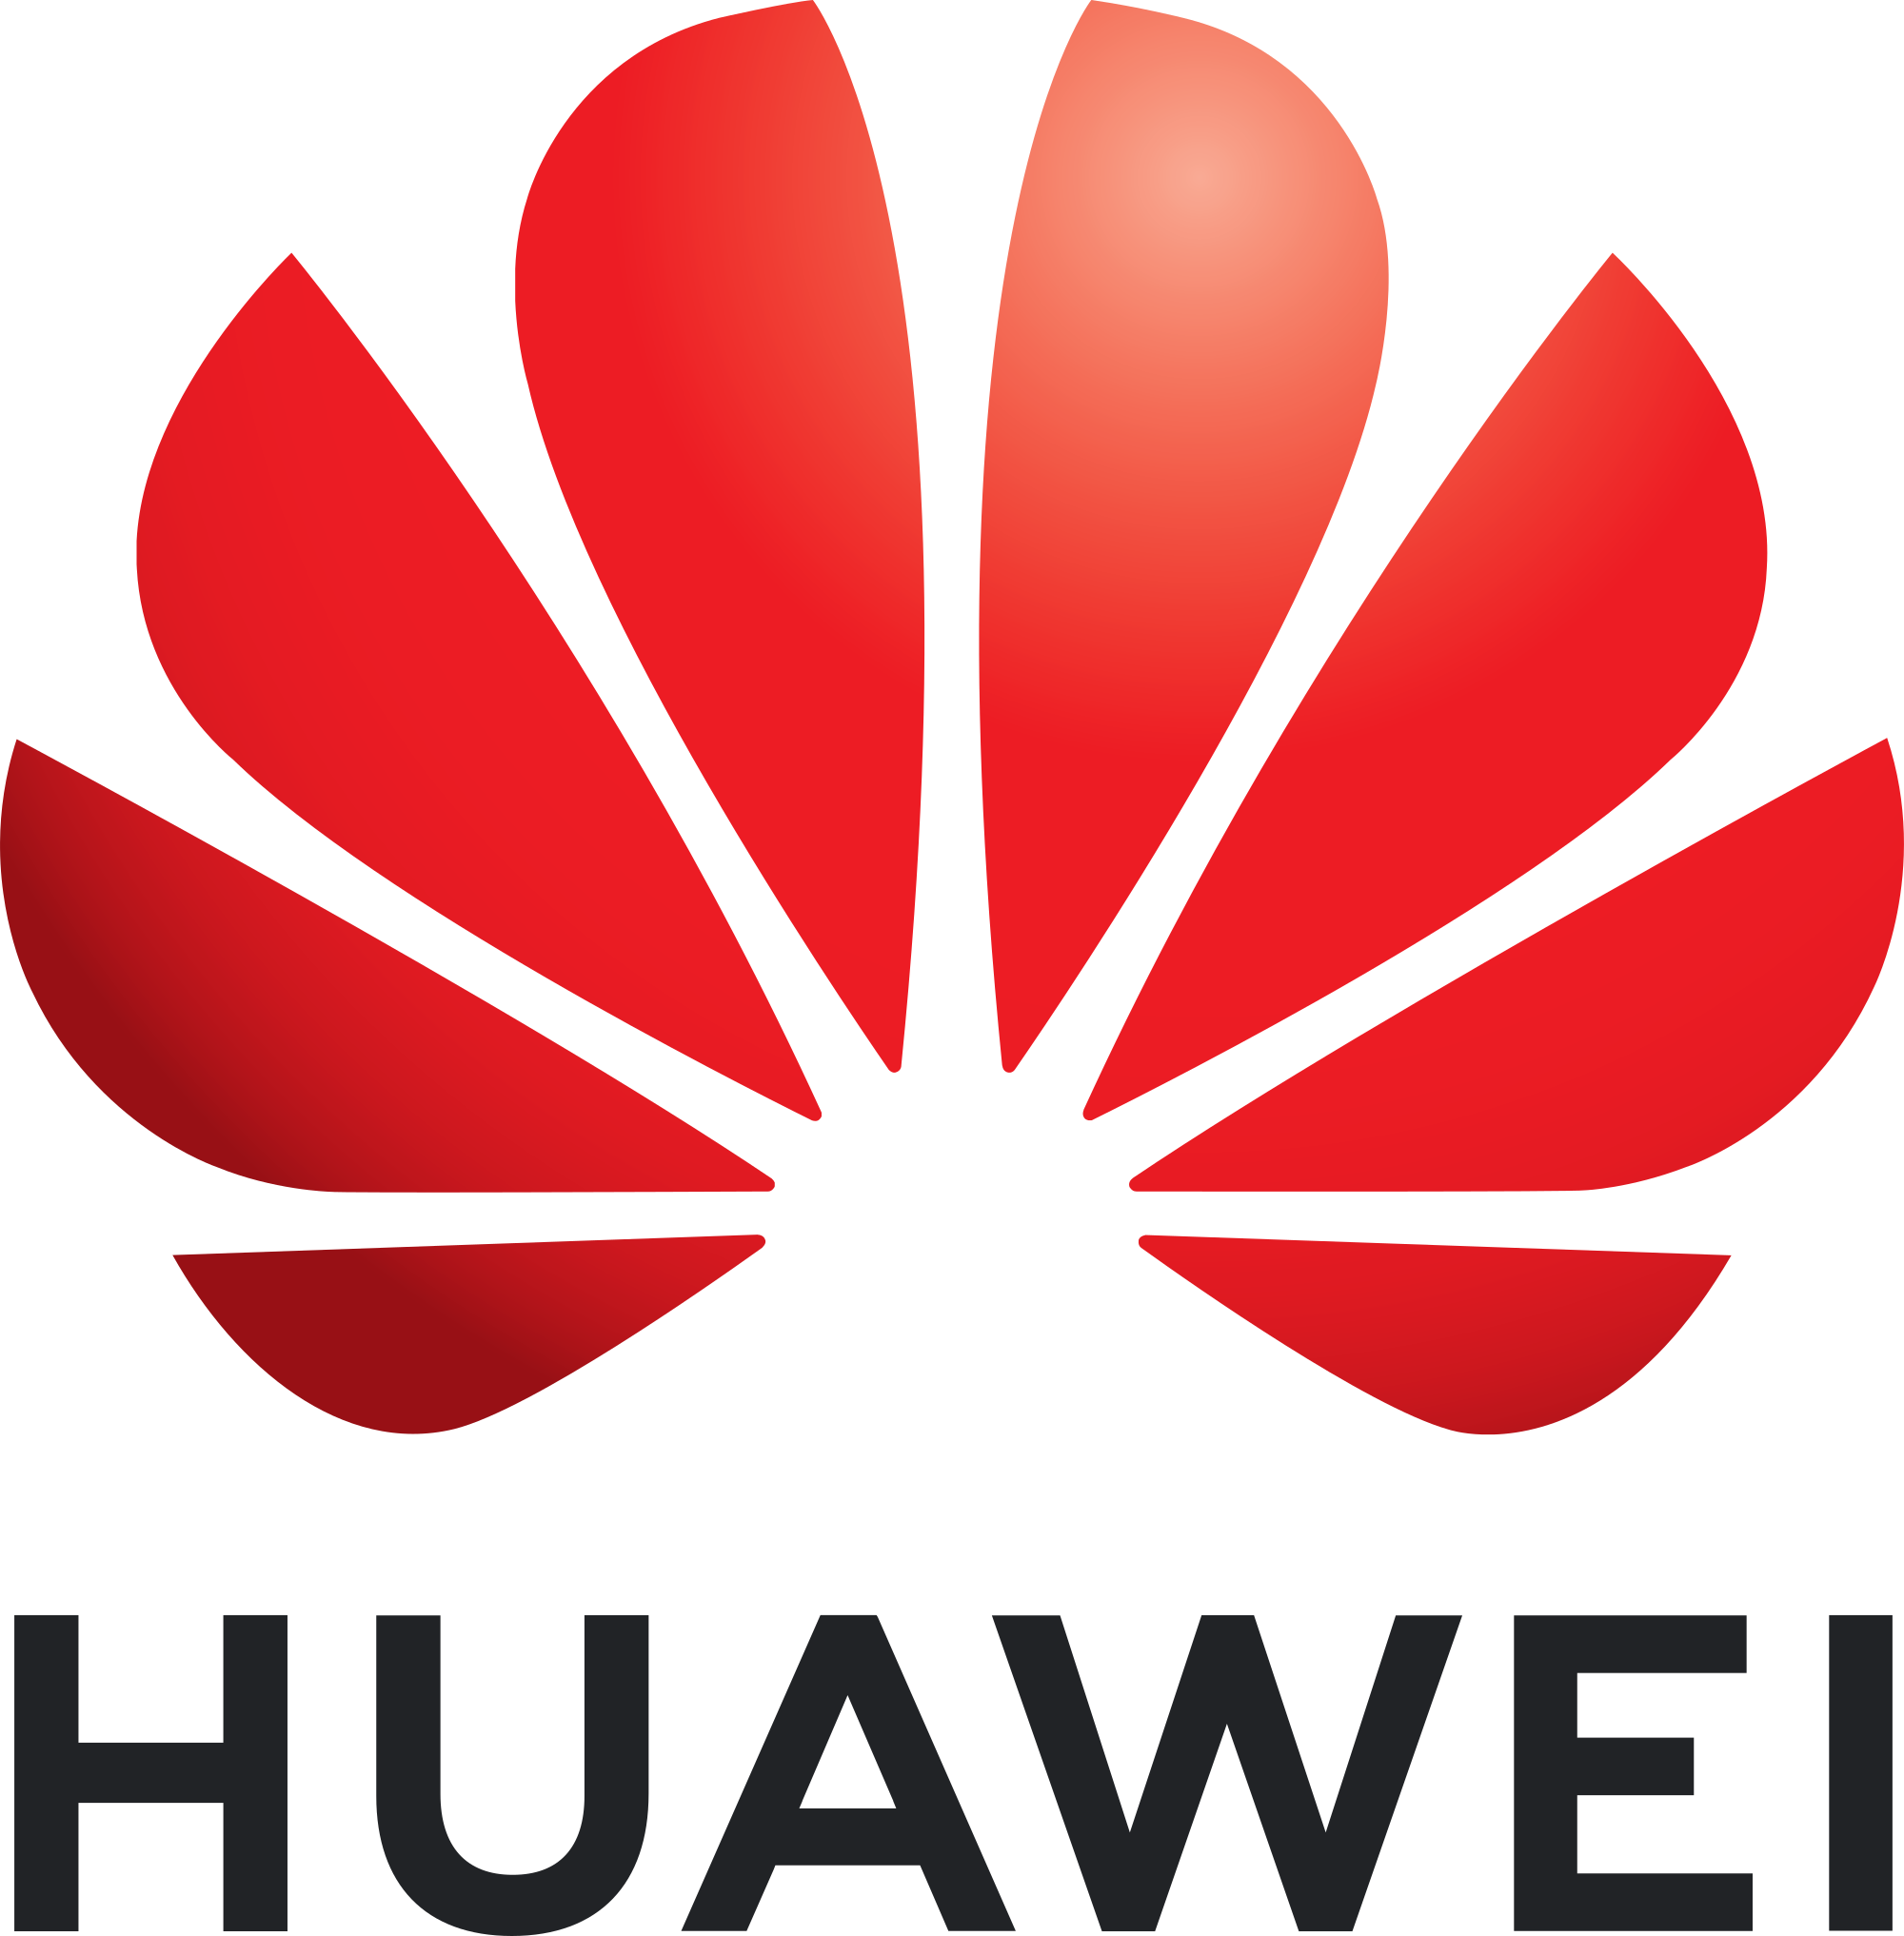 Svg org. File huawei wikimedia commons